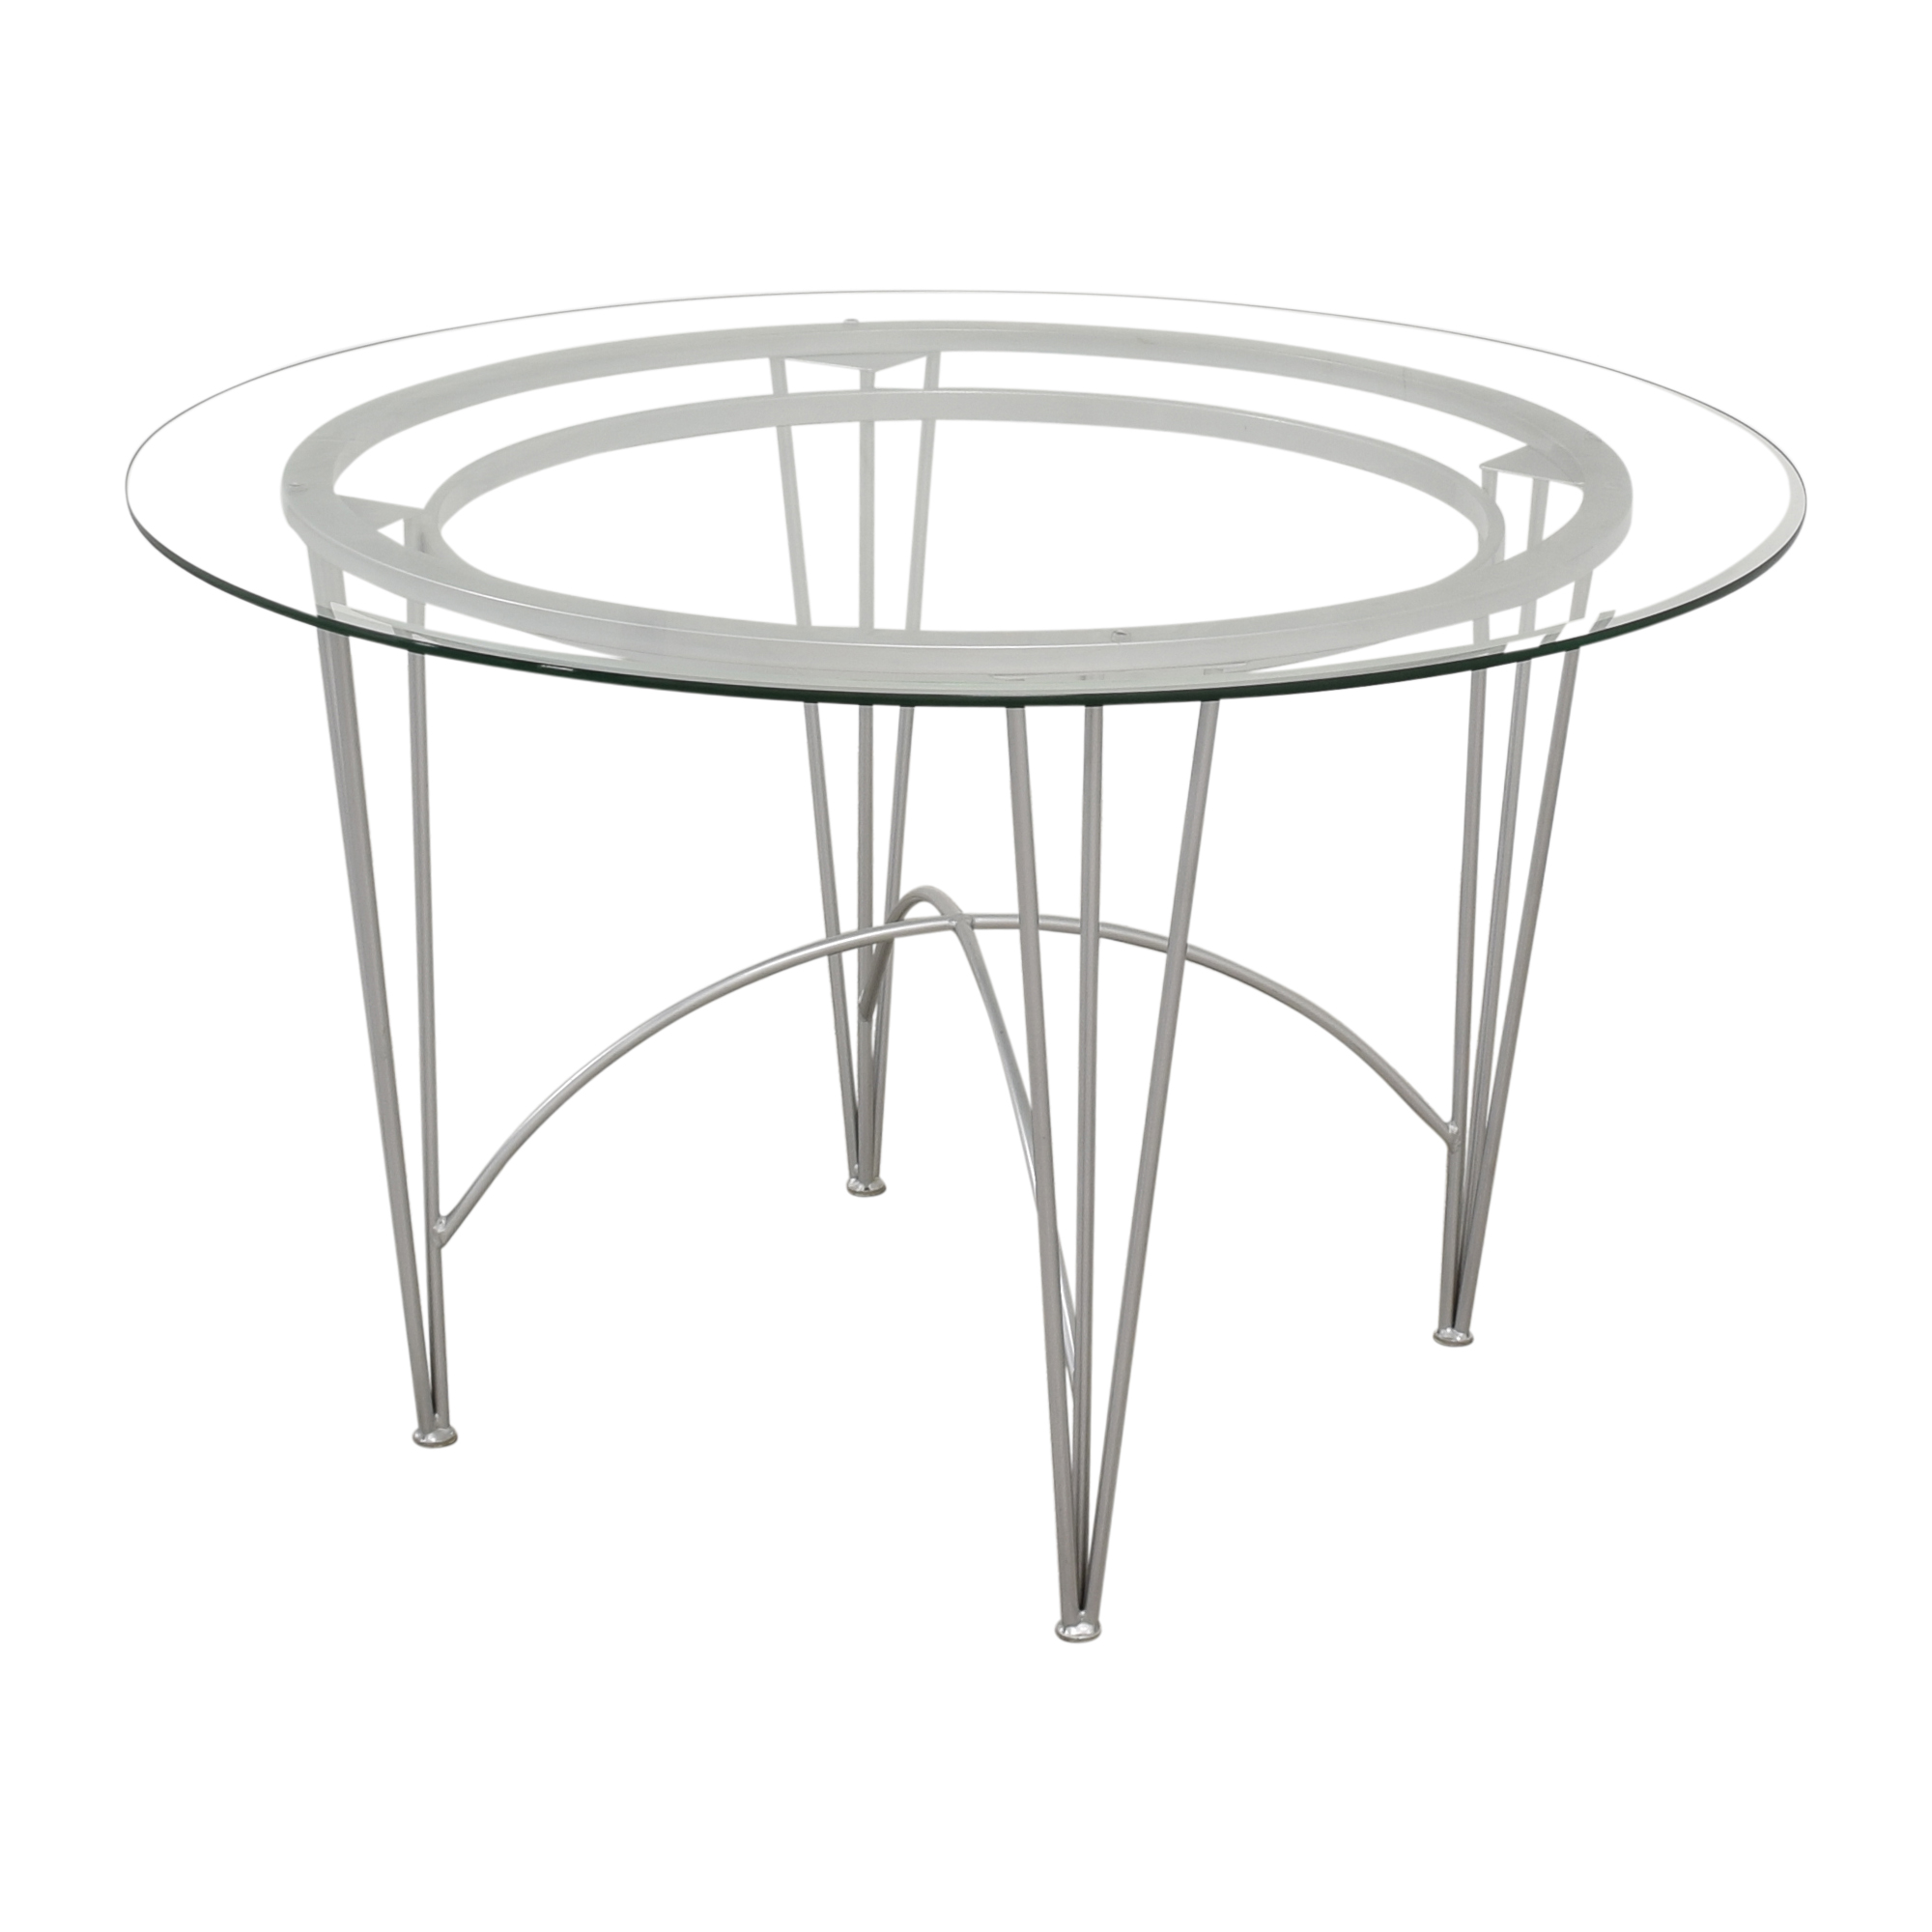 Round Glass Top Dining Table with Hairpin Legs